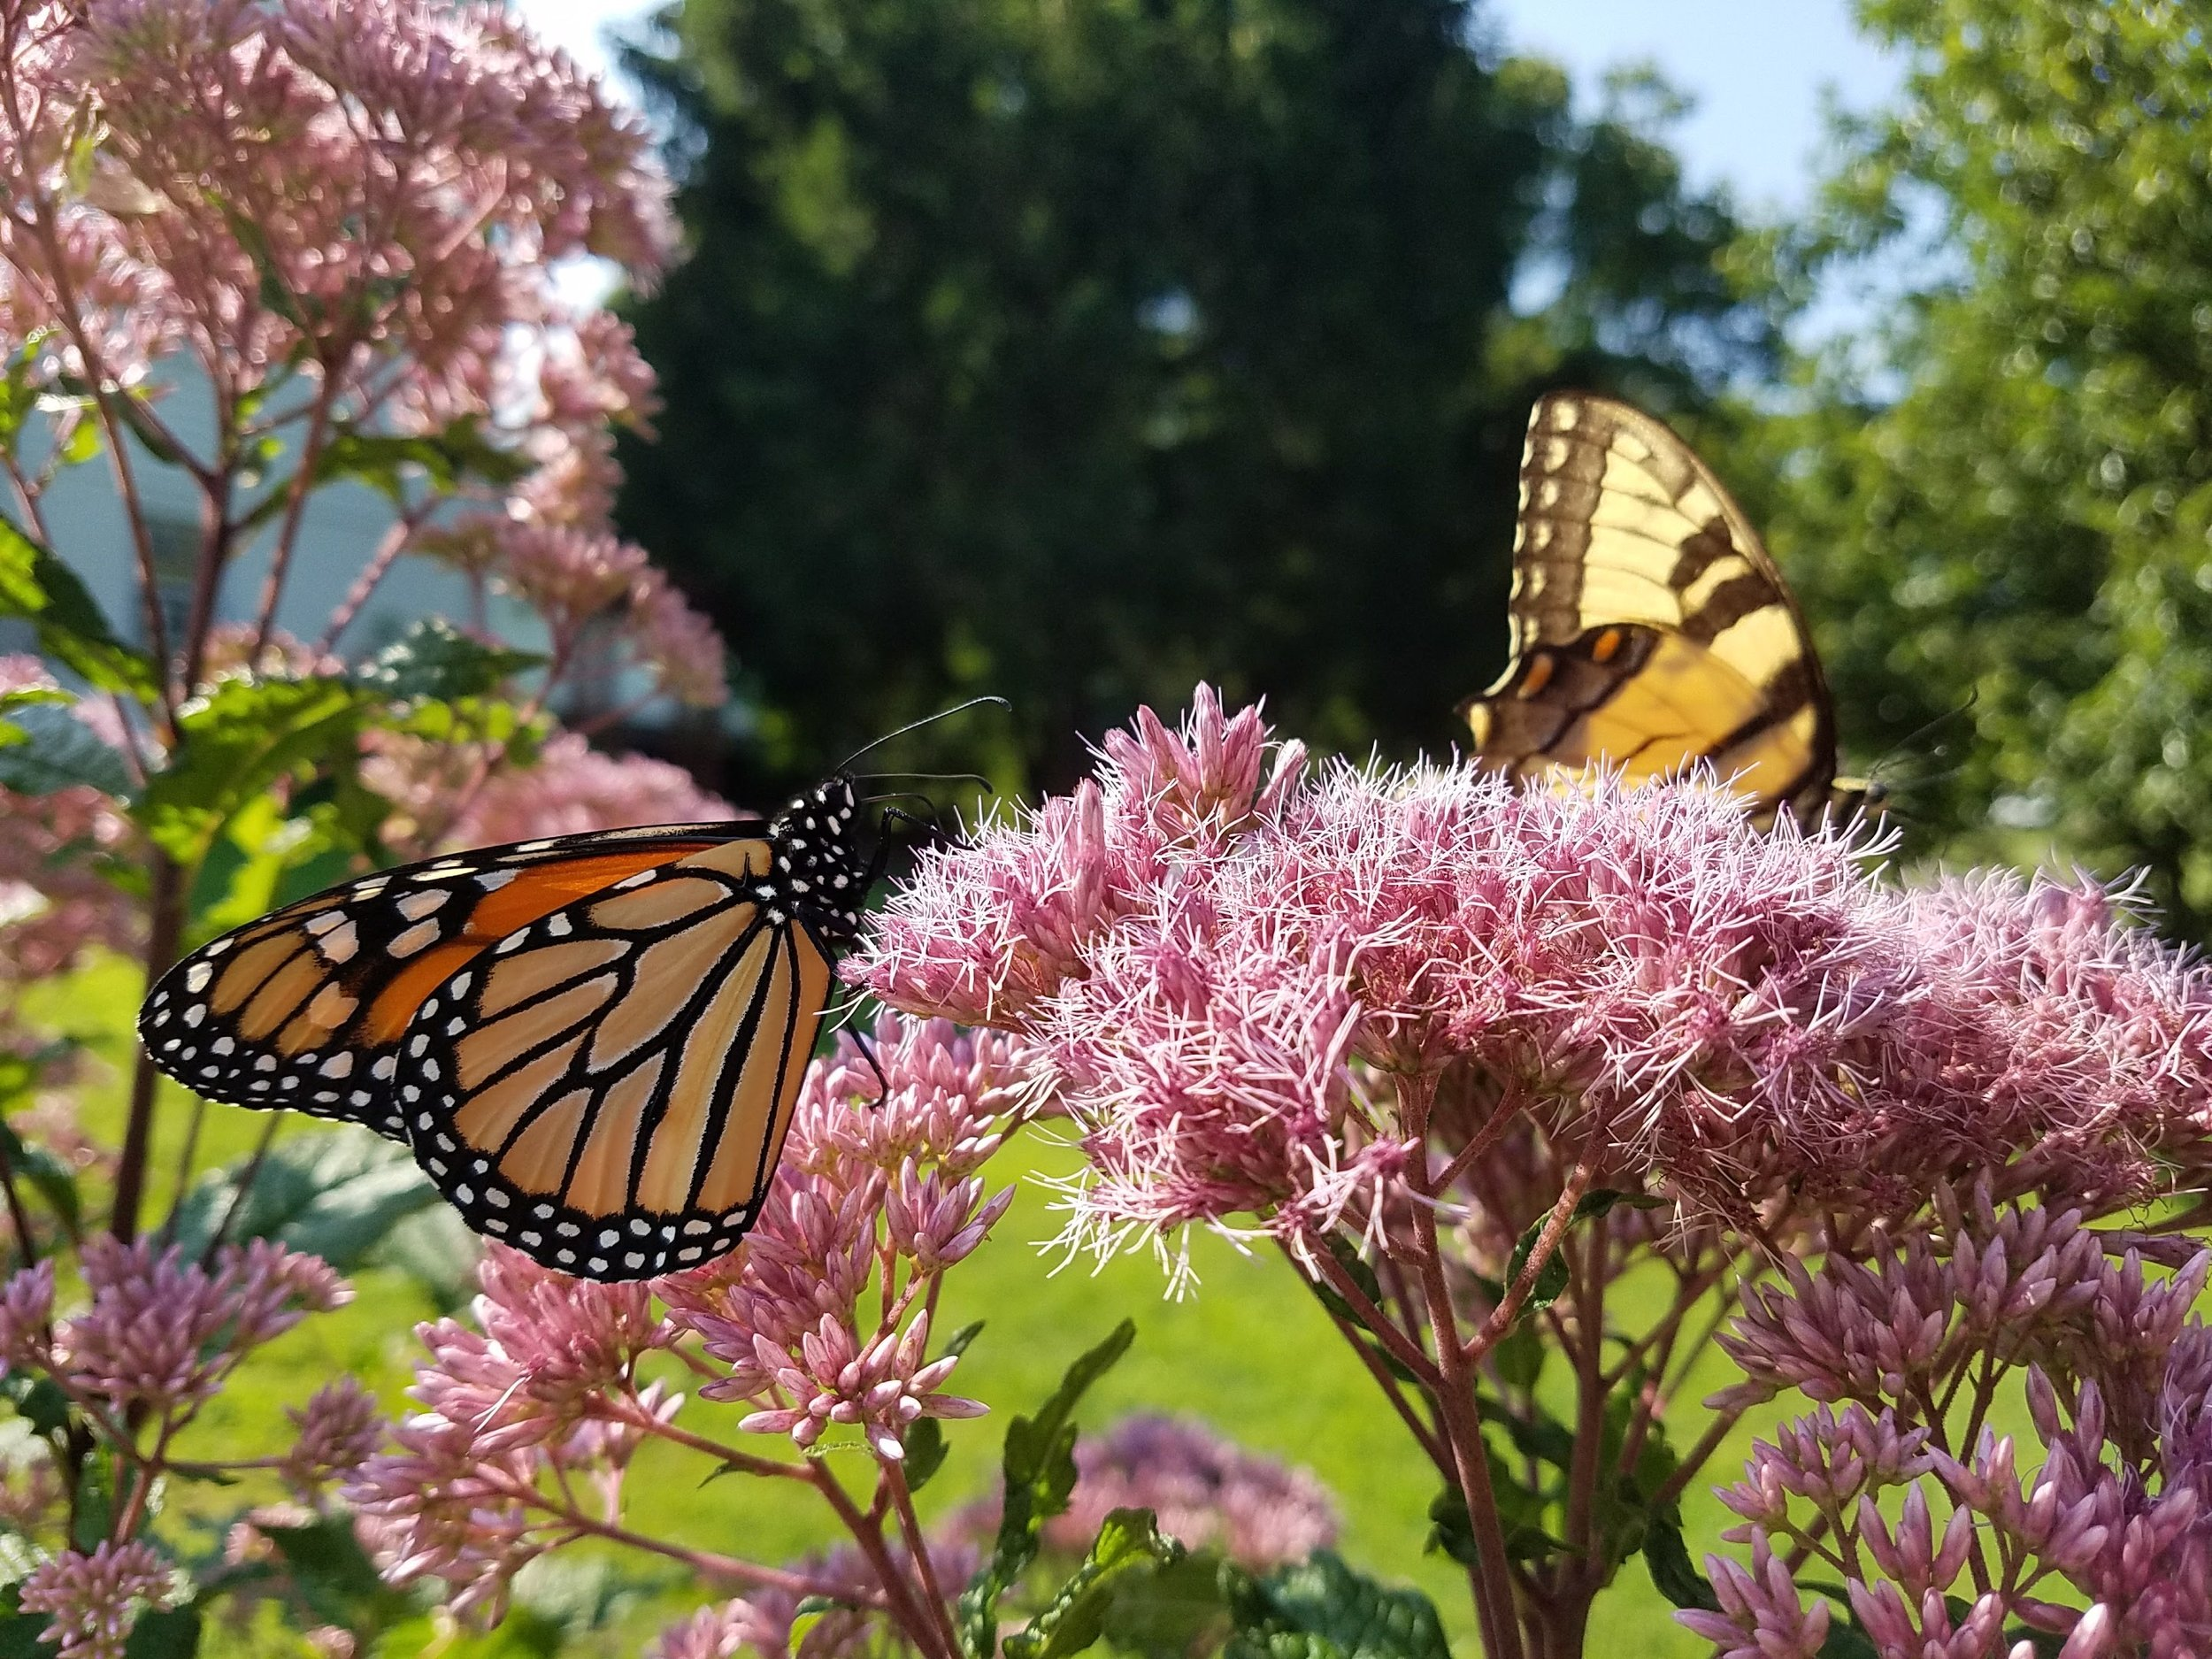 Monarch and Swallowtail Butterfly, Croton on Hudson